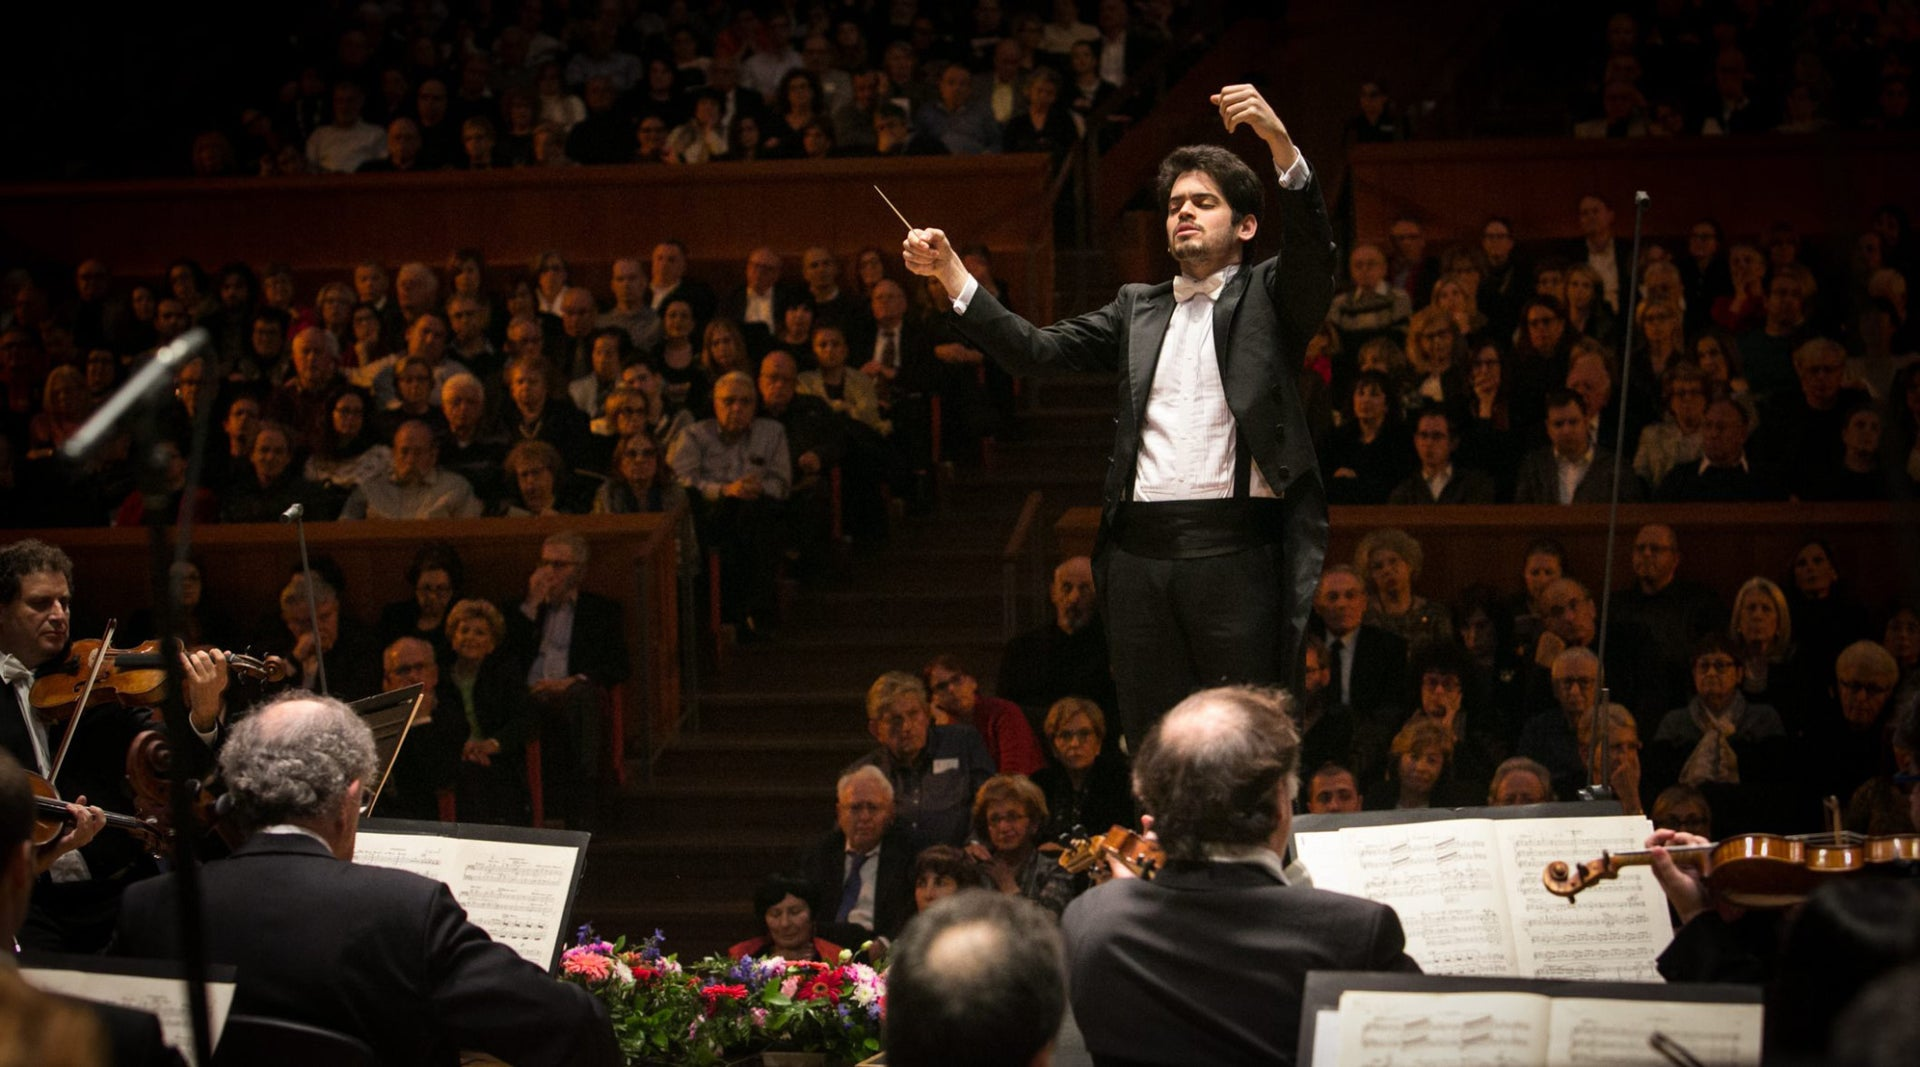 Lahav Shani conducting the Israel Philharmonic Orchestra at its 80th anniversary concert, 2016.